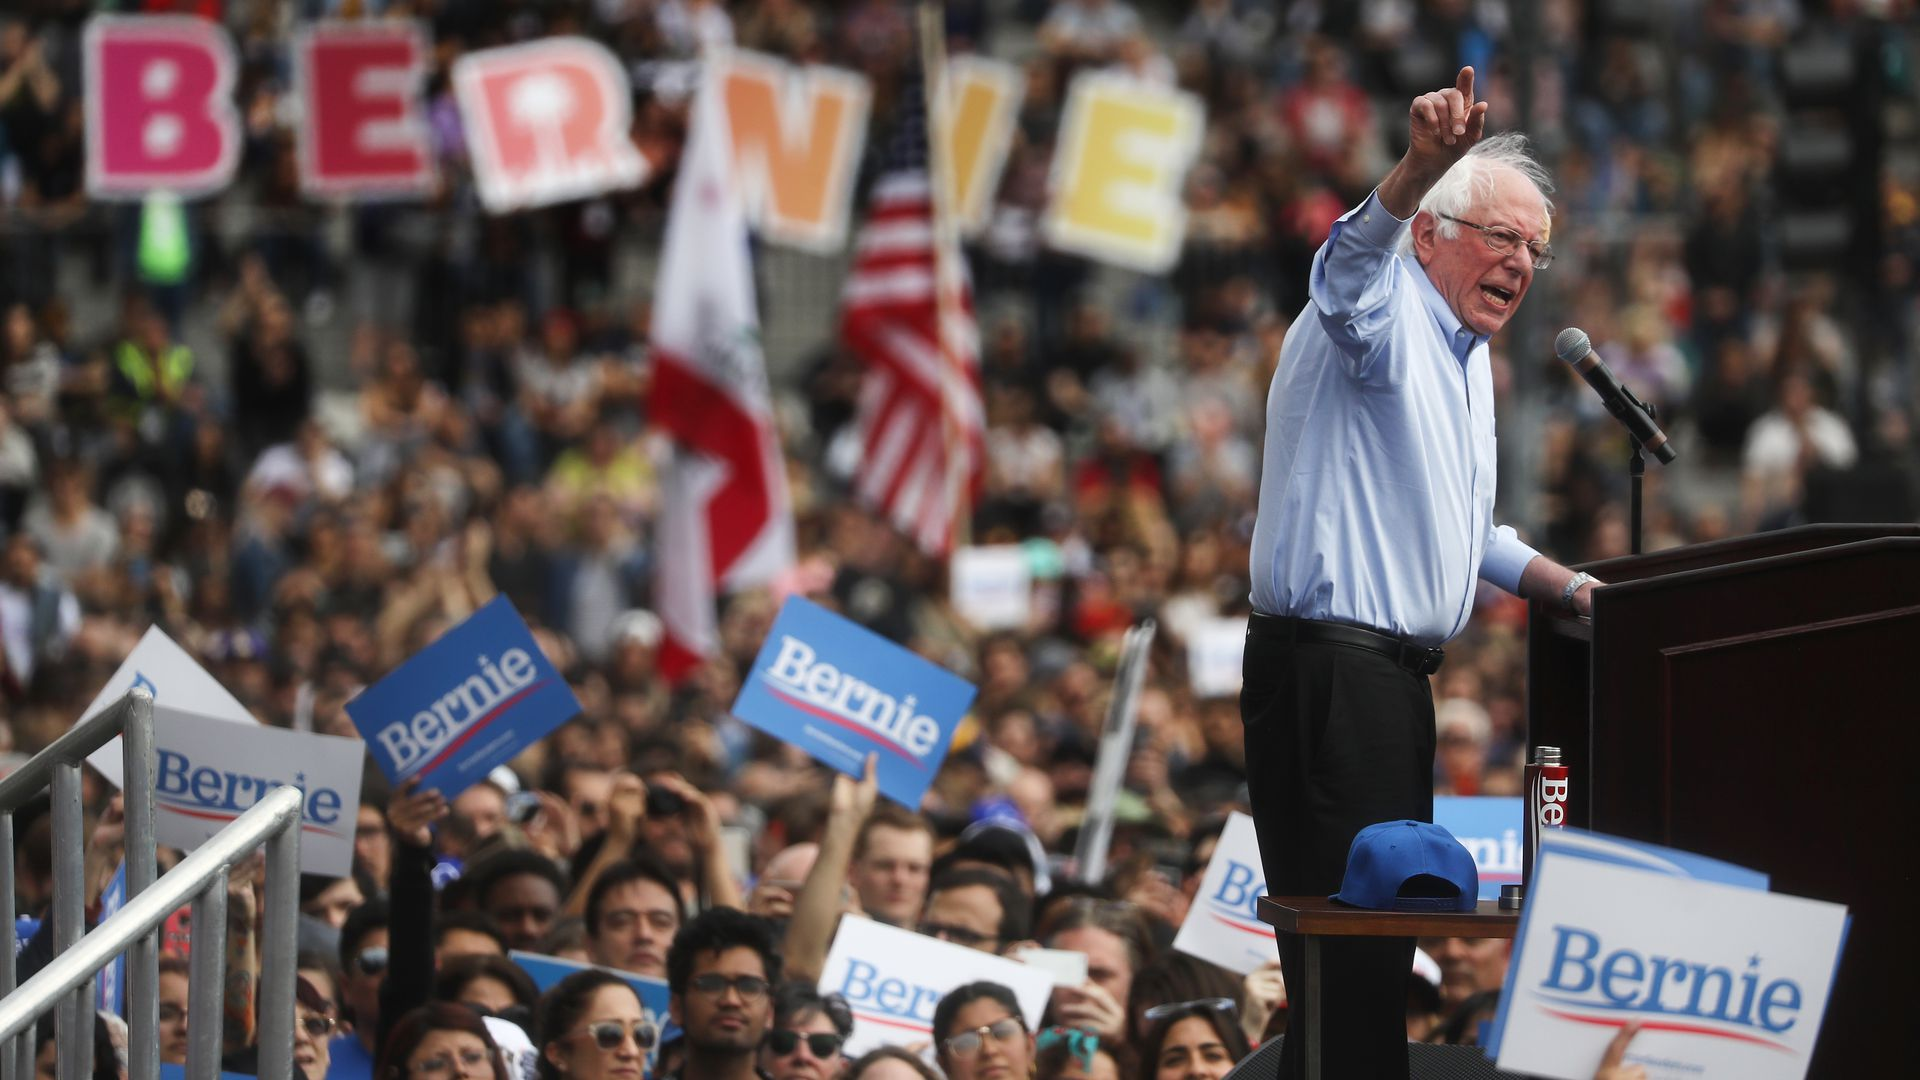 Bernie Sanders paid a visit to a Los Angeles mosque while campaigning in California Saturday.